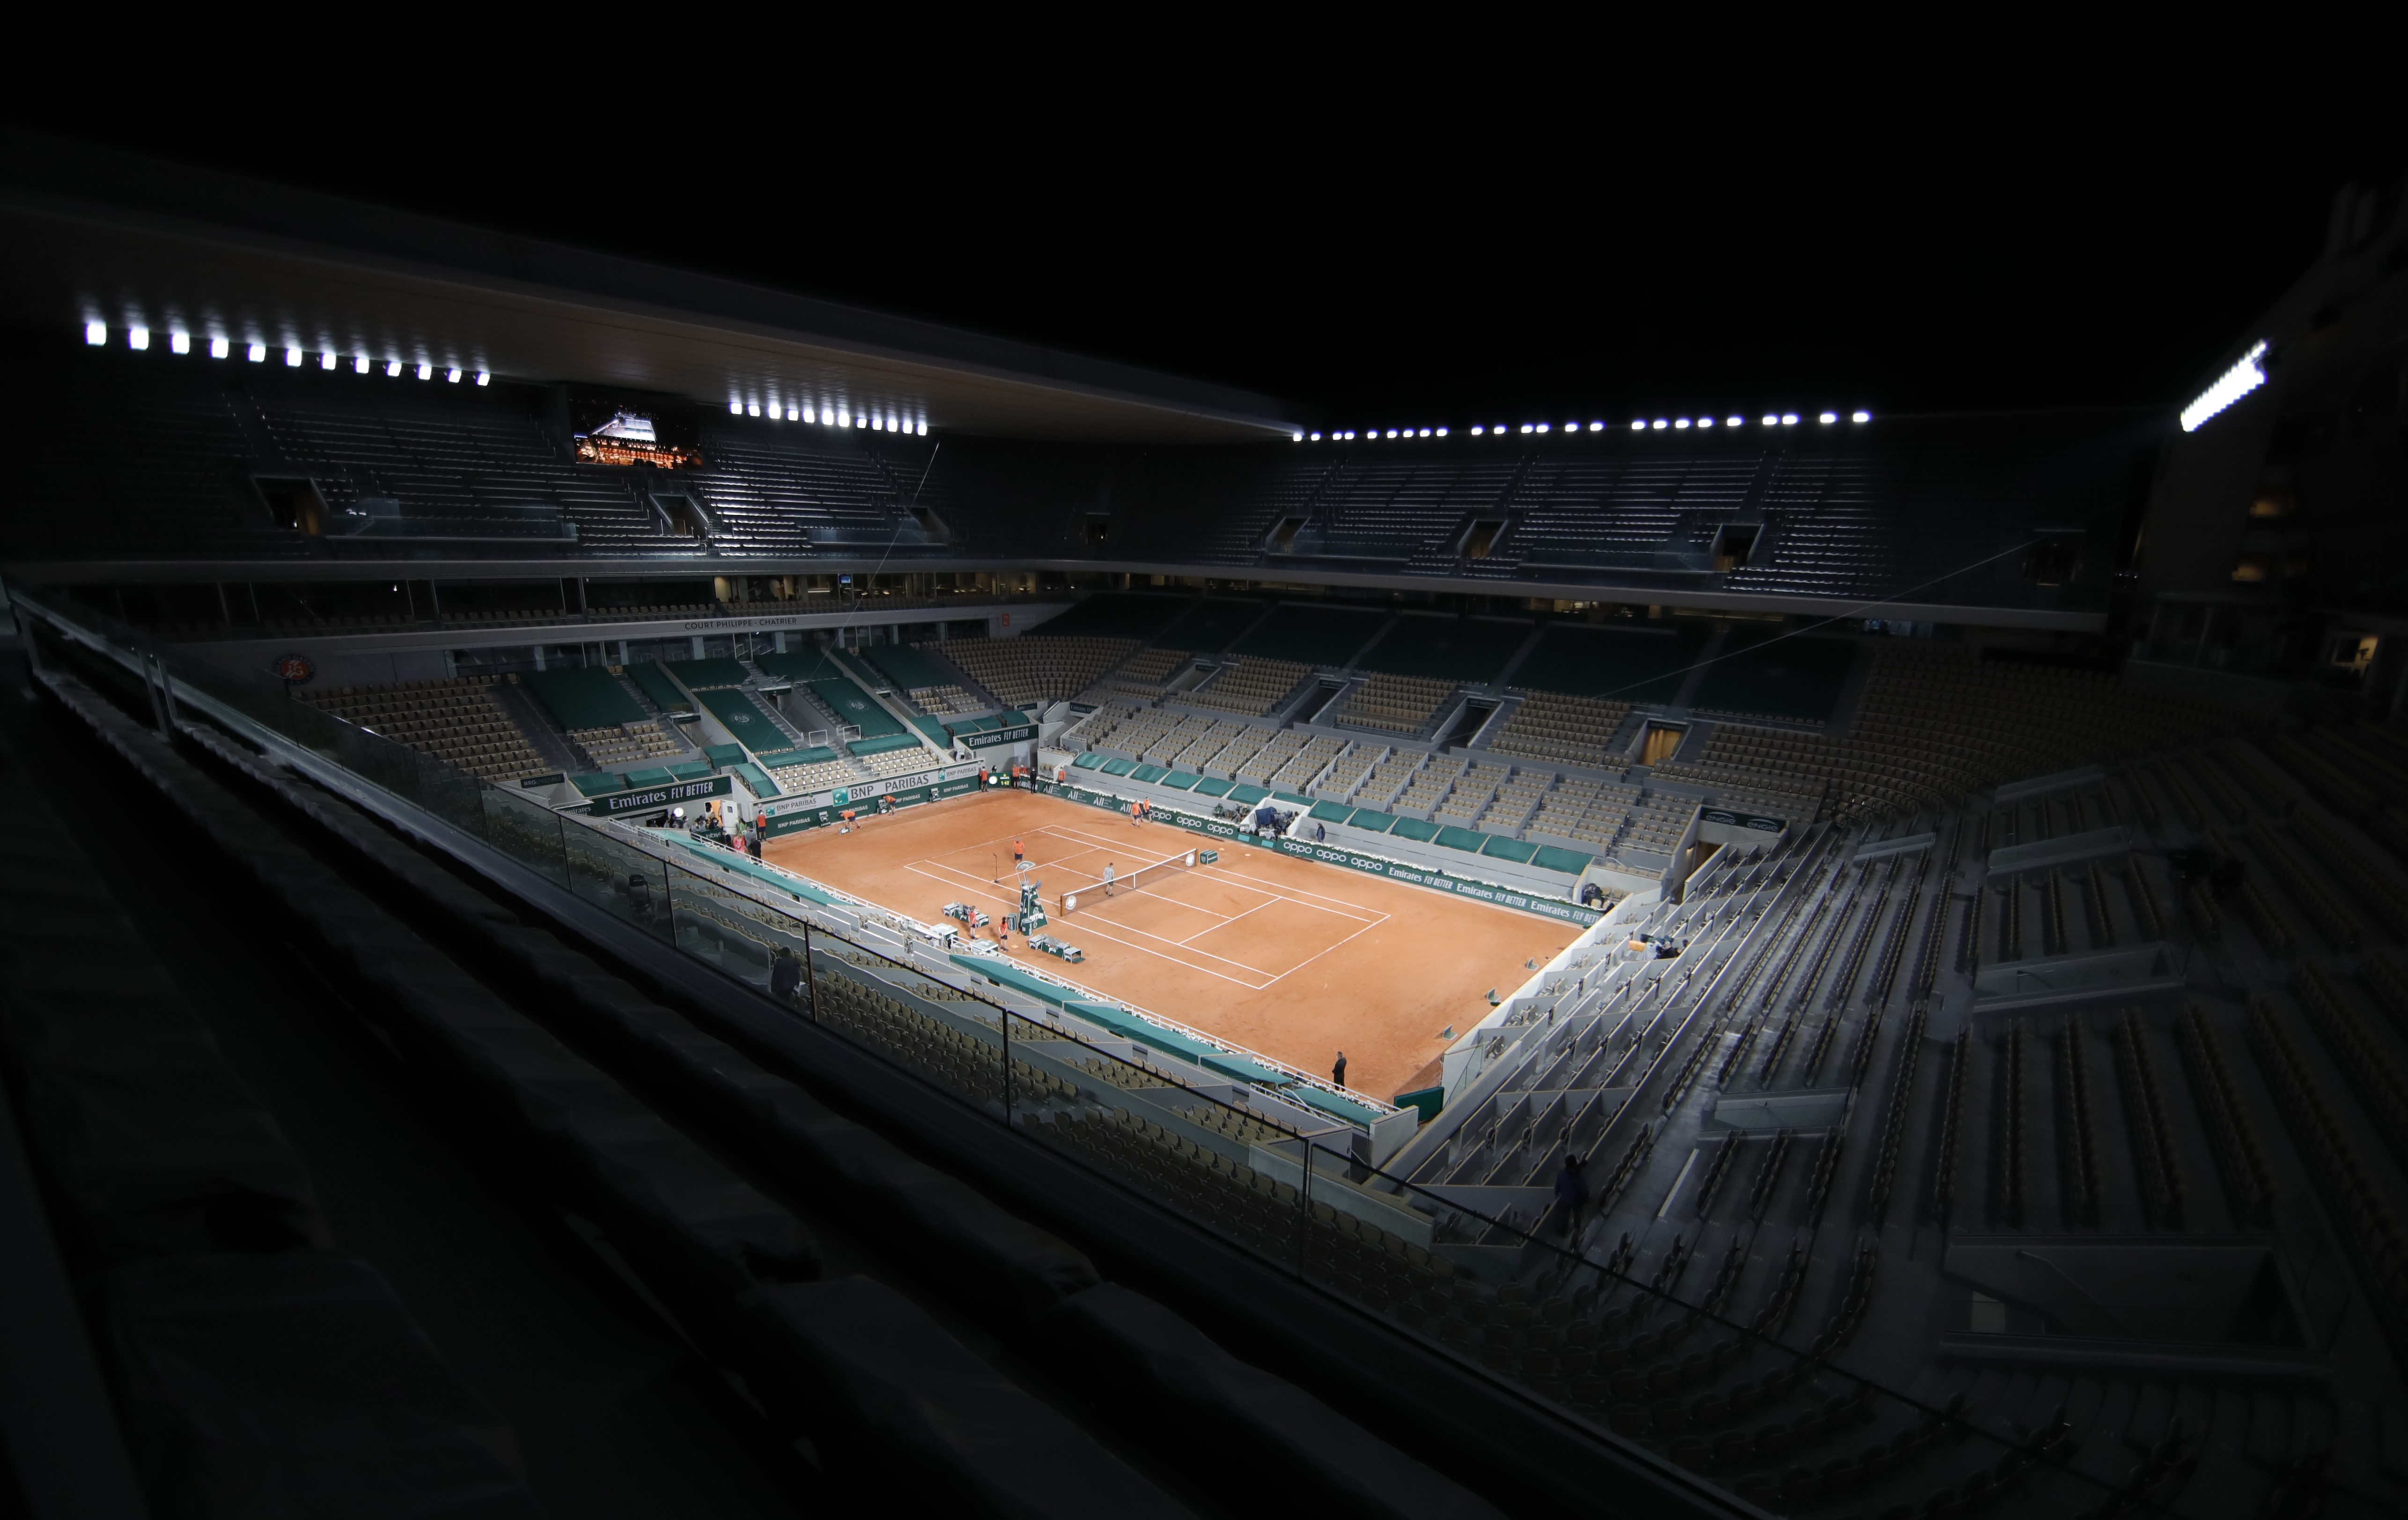 Tennis - French Open - Roland Garros, Paris, France - May 31, 2021 General view of the stadium after the first round match between Serena Williams of the U.S. and Romania's Irina-Camelia Begu REUTERS/Sarah Meyssonnier